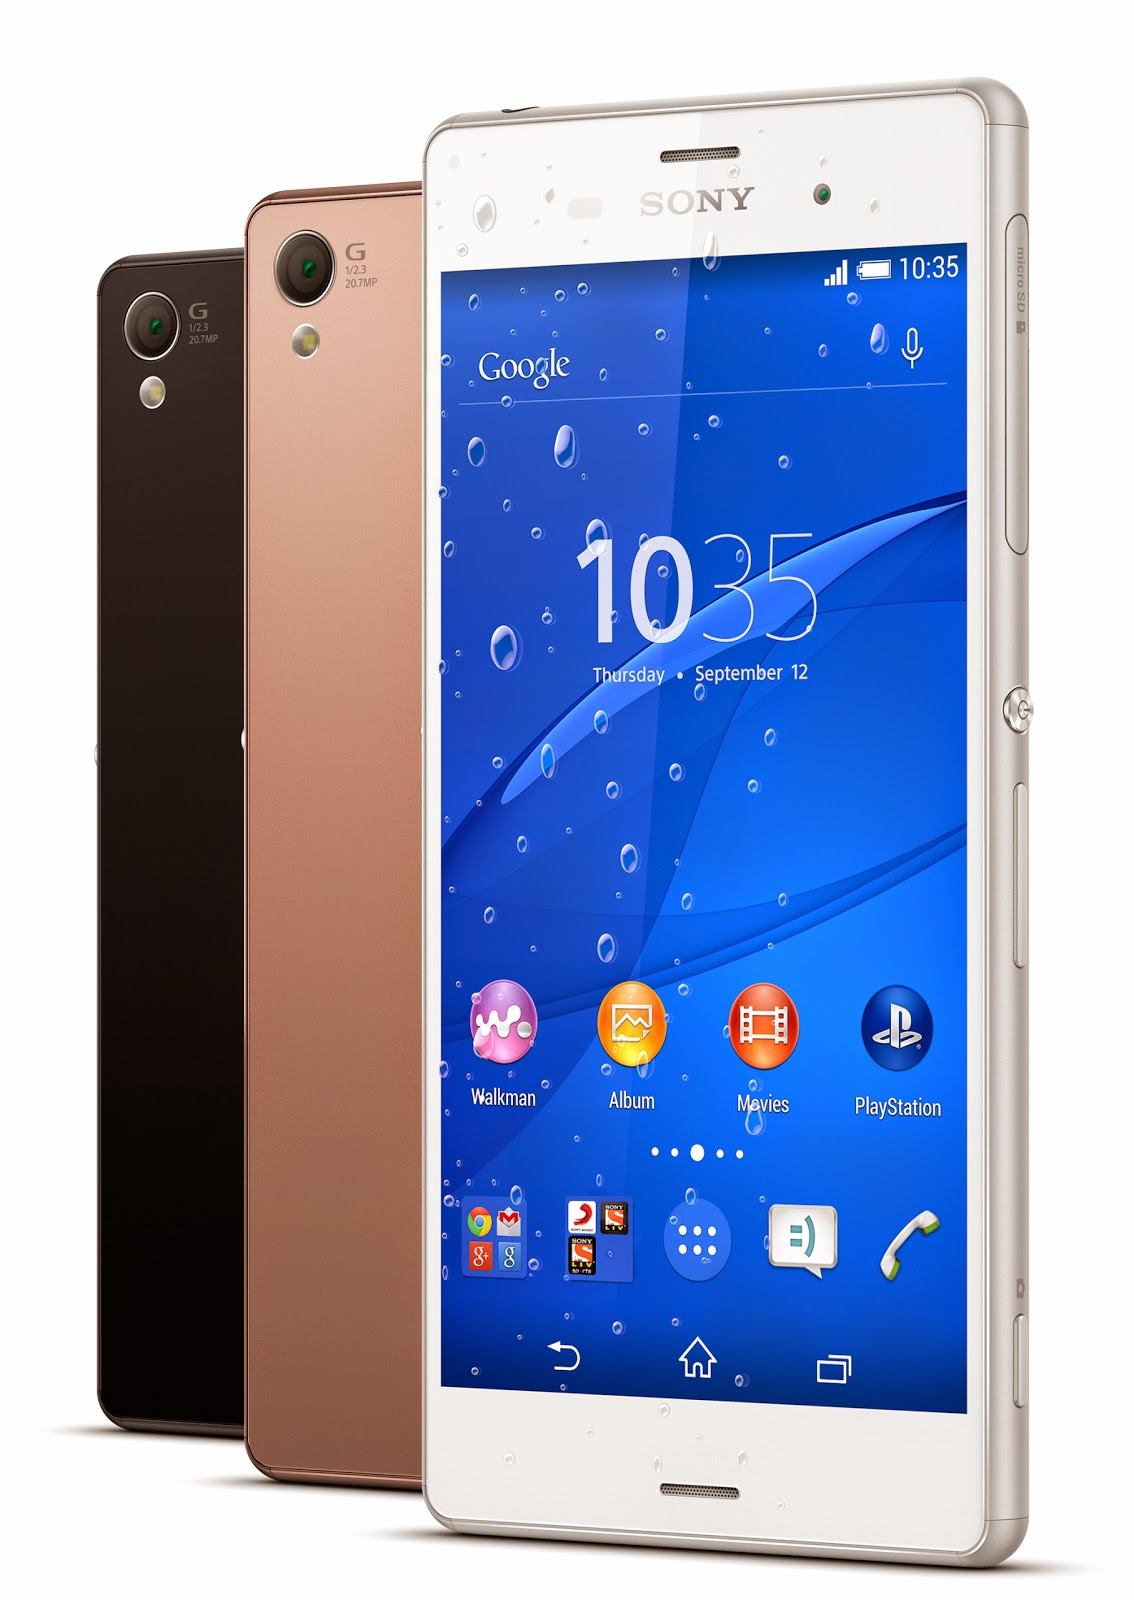 Sony Xperia Z3 - the latest Android phone by Sony